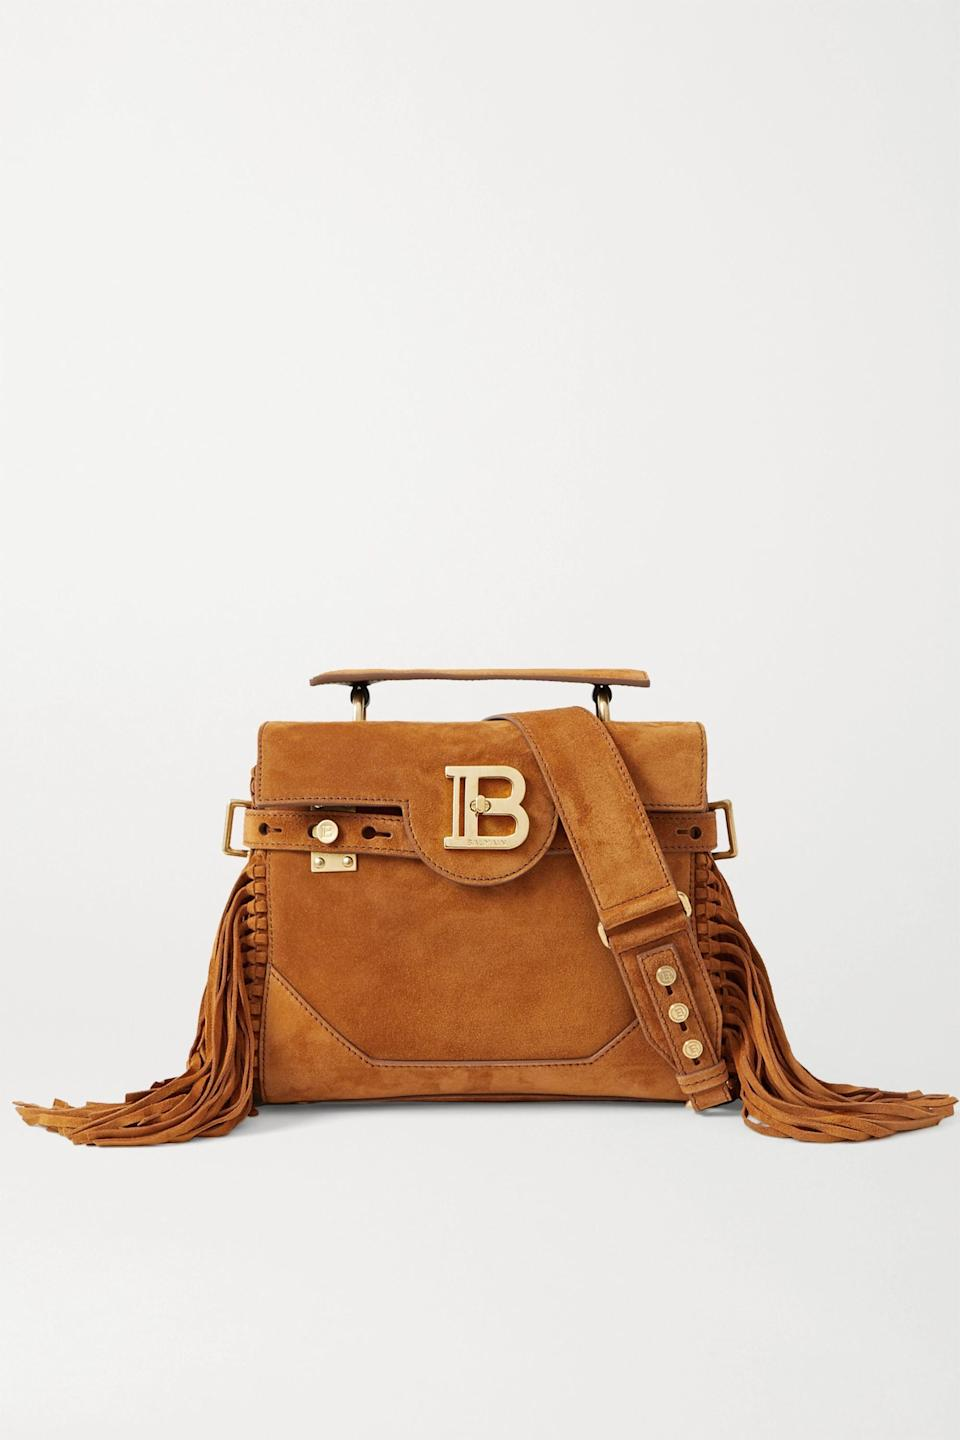 """<p><strong>Balmain</strong></p><p>net-a-porter.com</p><p><strong>$2195.00</strong></p><p><a href=""""https://click.linksynergy.com/deeplink?id=6Km1lFswsiY&mid=24449&murl=https%3A%2F%2Fwww.net-a-porter.com%2Fen-us%2Fshop%2Fproduct%2Fbalmain%2Fb-buzz-19-fringed-suede-shoulder-bag%2F1287171"""" rel=""""nofollow noopener"""" target=""""_blank"""" data-ylk=""""slk:Shop Now"""" class=""""link rapid-noclick-resp"""">Shop Now</a></p><p>This bag is the epitome of the return of '70s fashion. Everything from the fun fringe, suede fabric, and gold hardware will set you up for a breezy year ahead. </p>"""